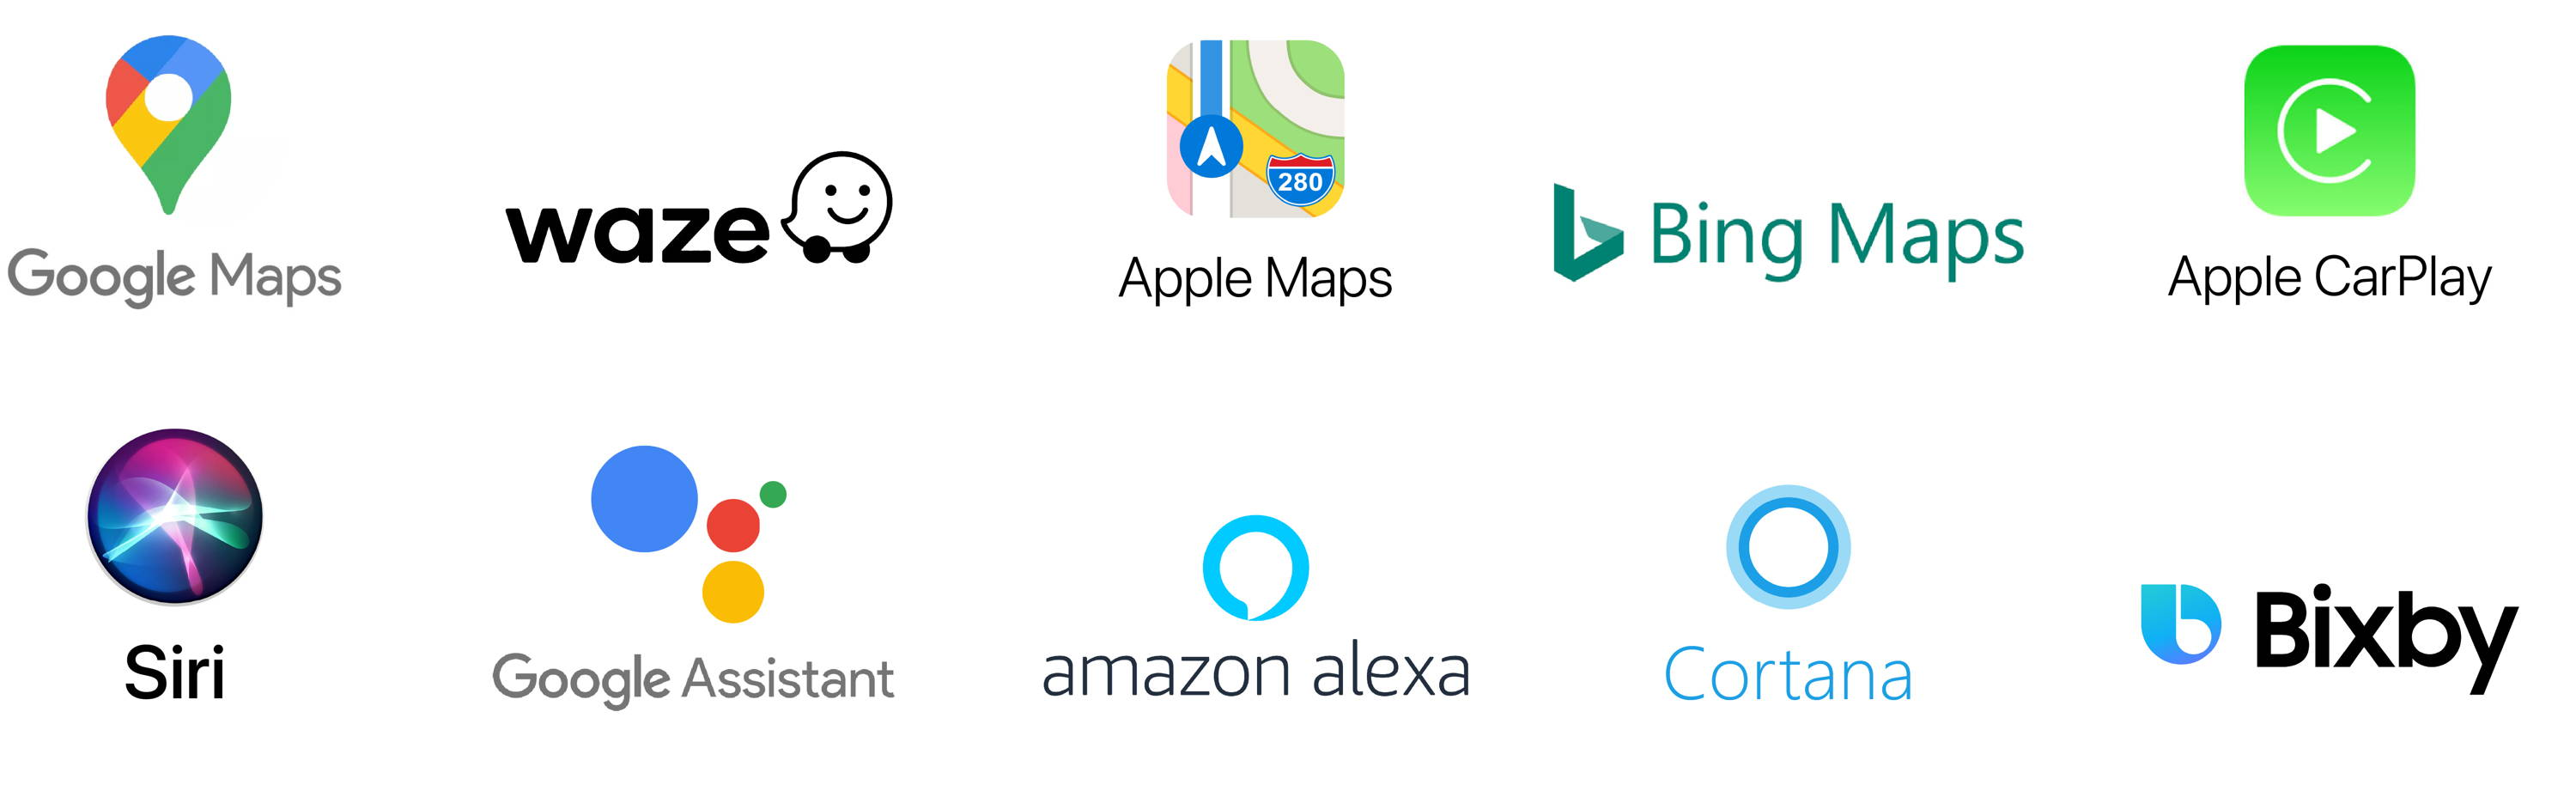 Google Maps and other major map and voice search platforms